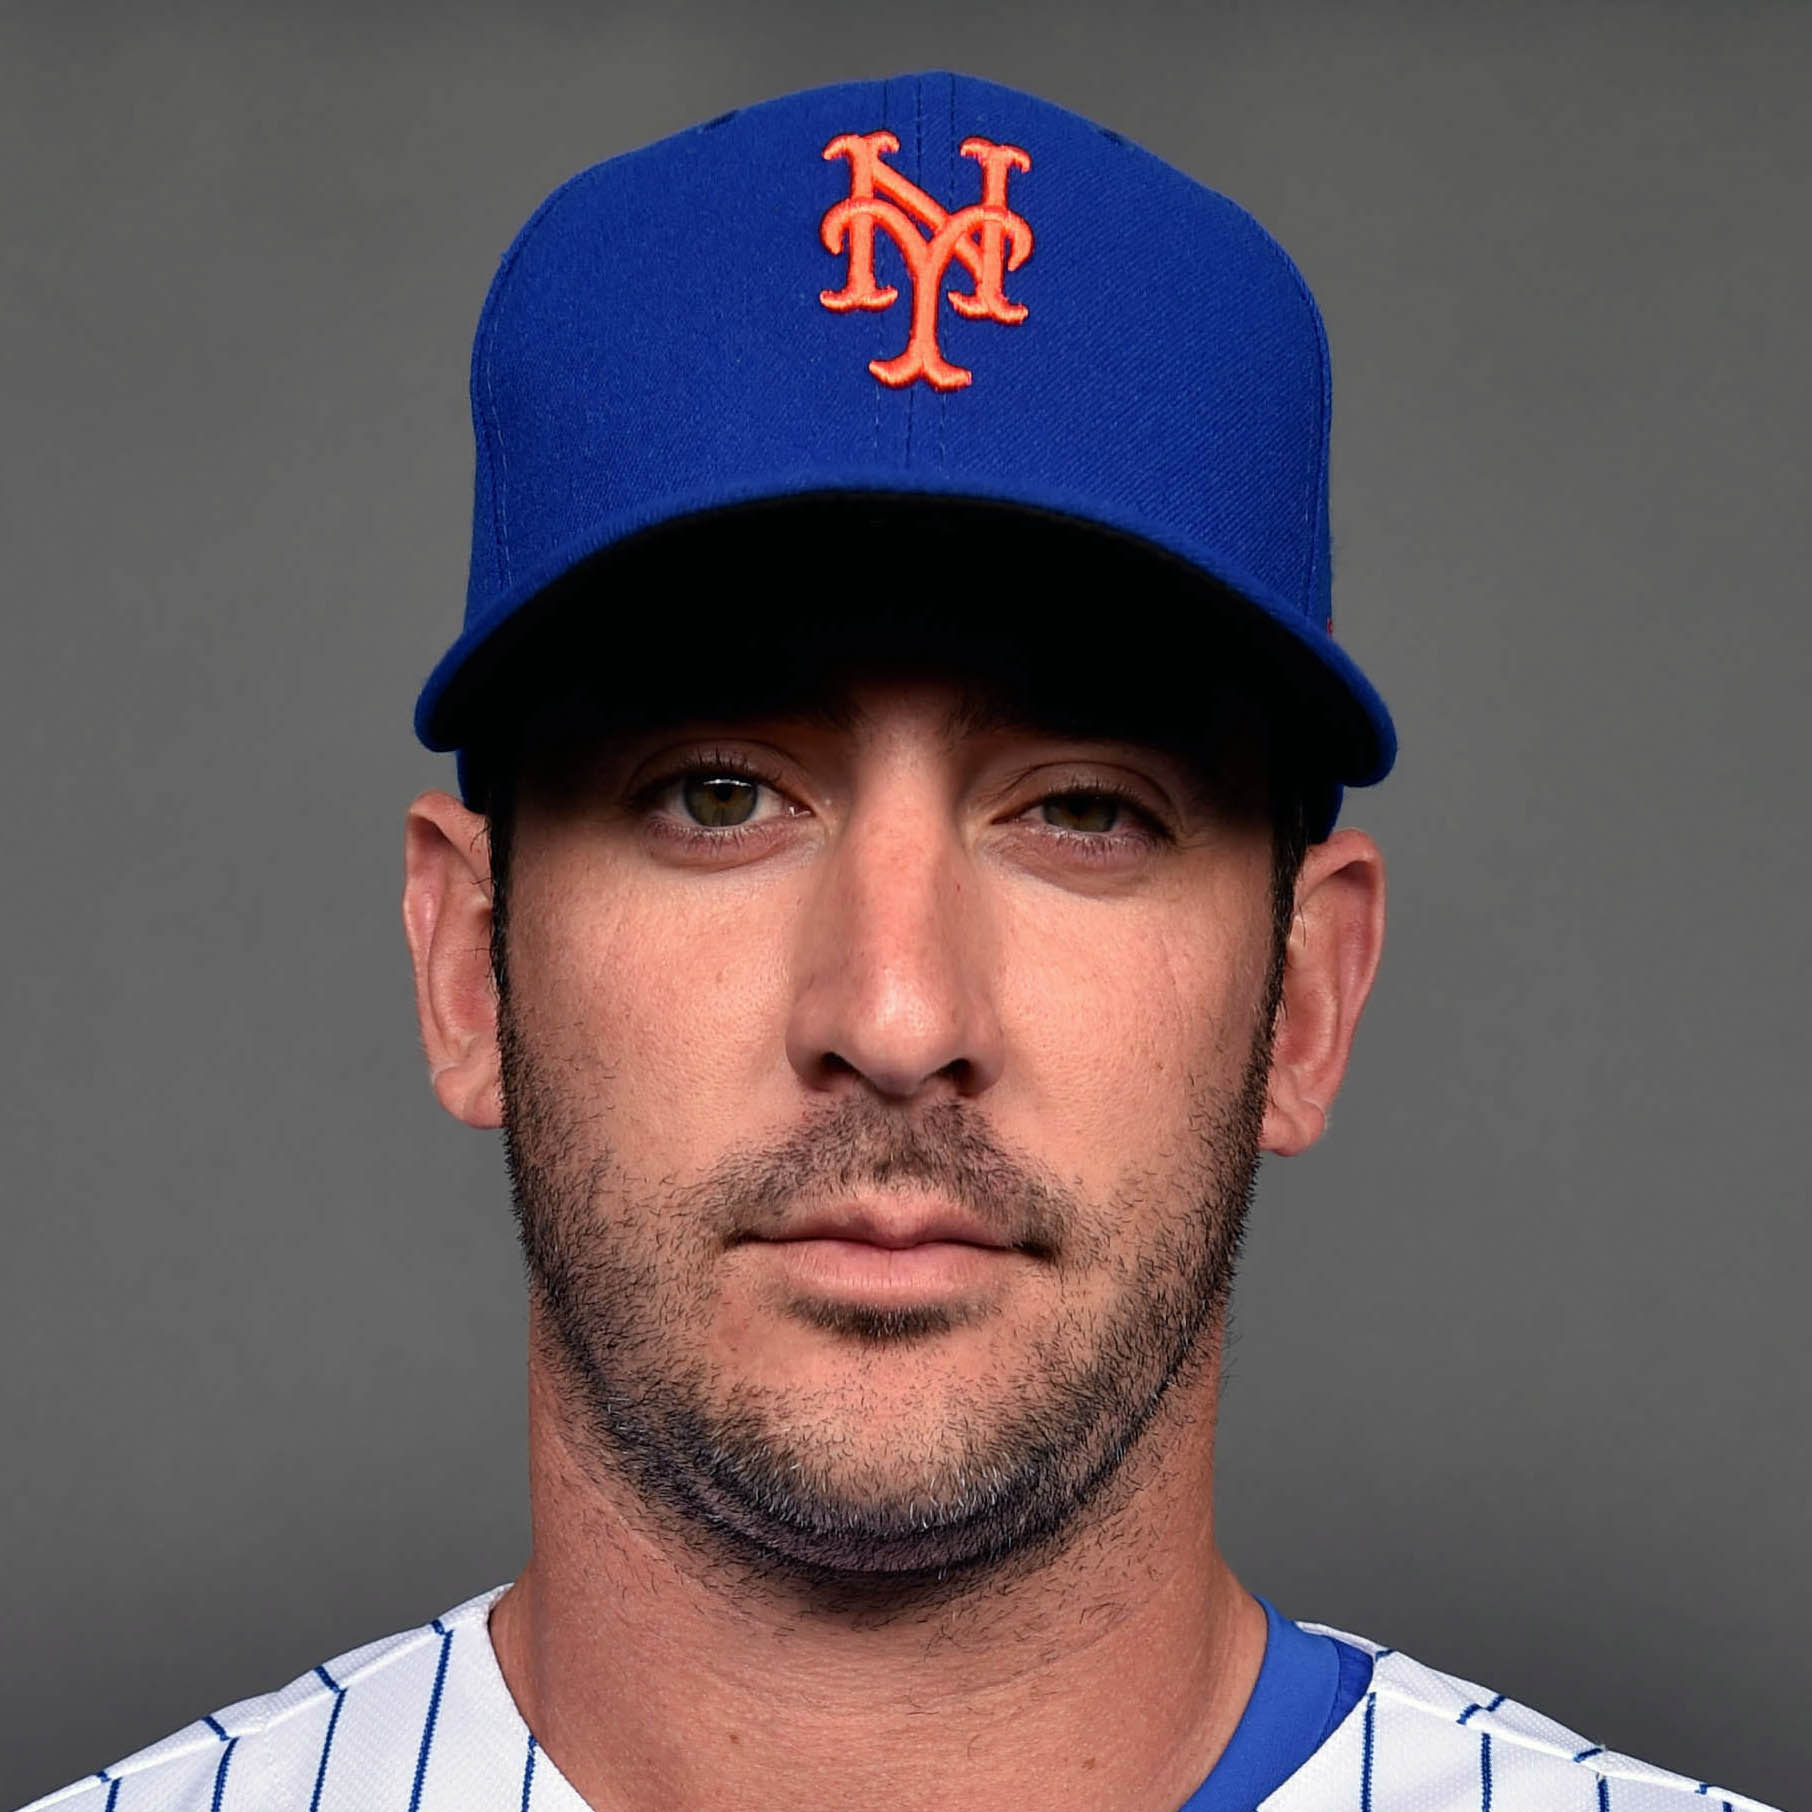 Matt Harvey (R) Headshot